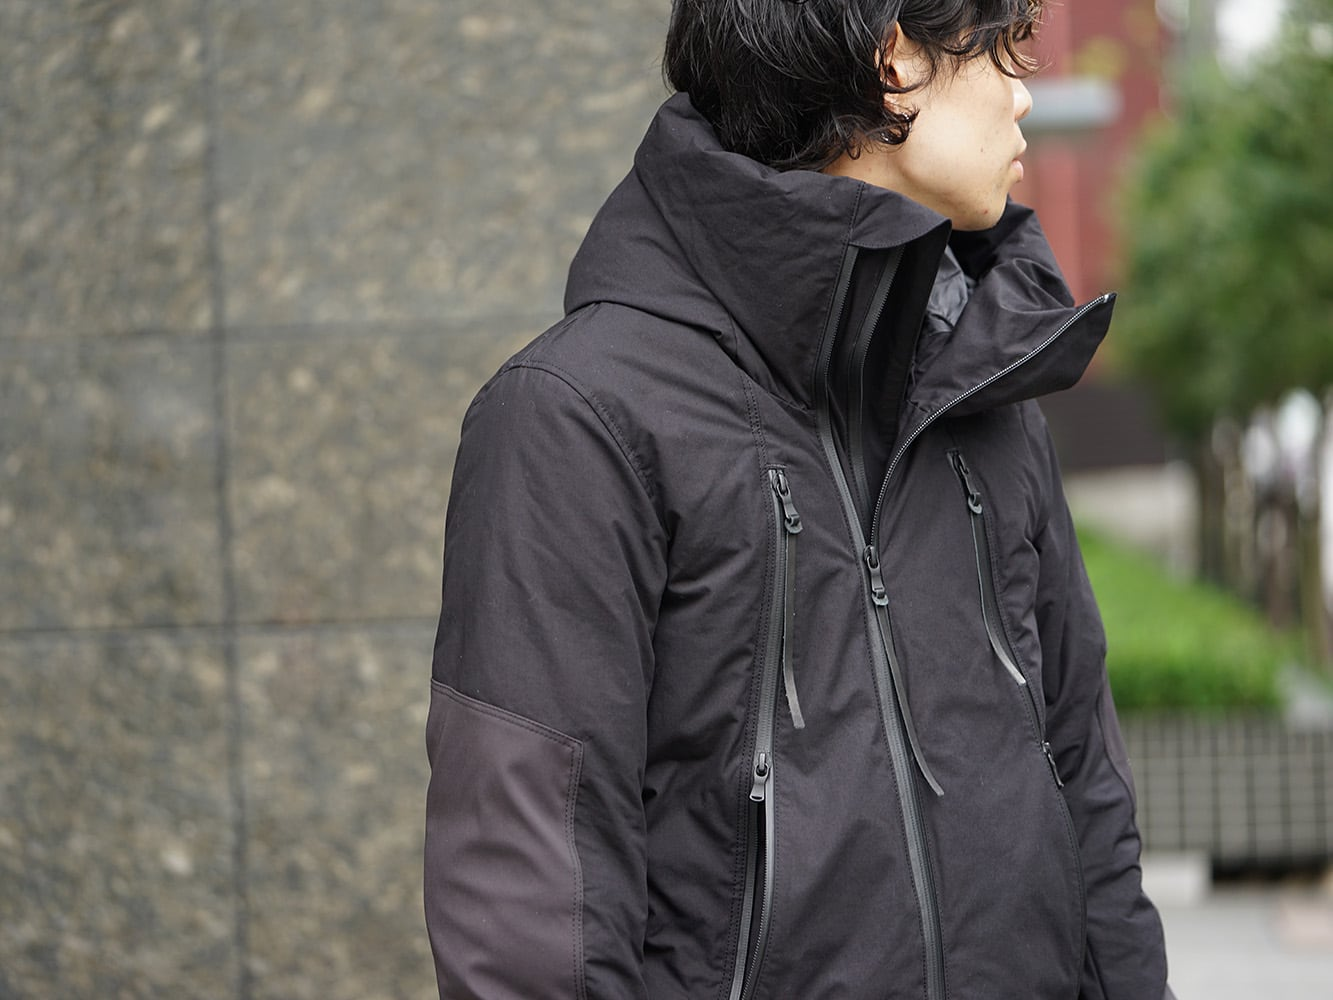 The Viridi-anne x RIPVANWINKLE Collaboration Down Jacket